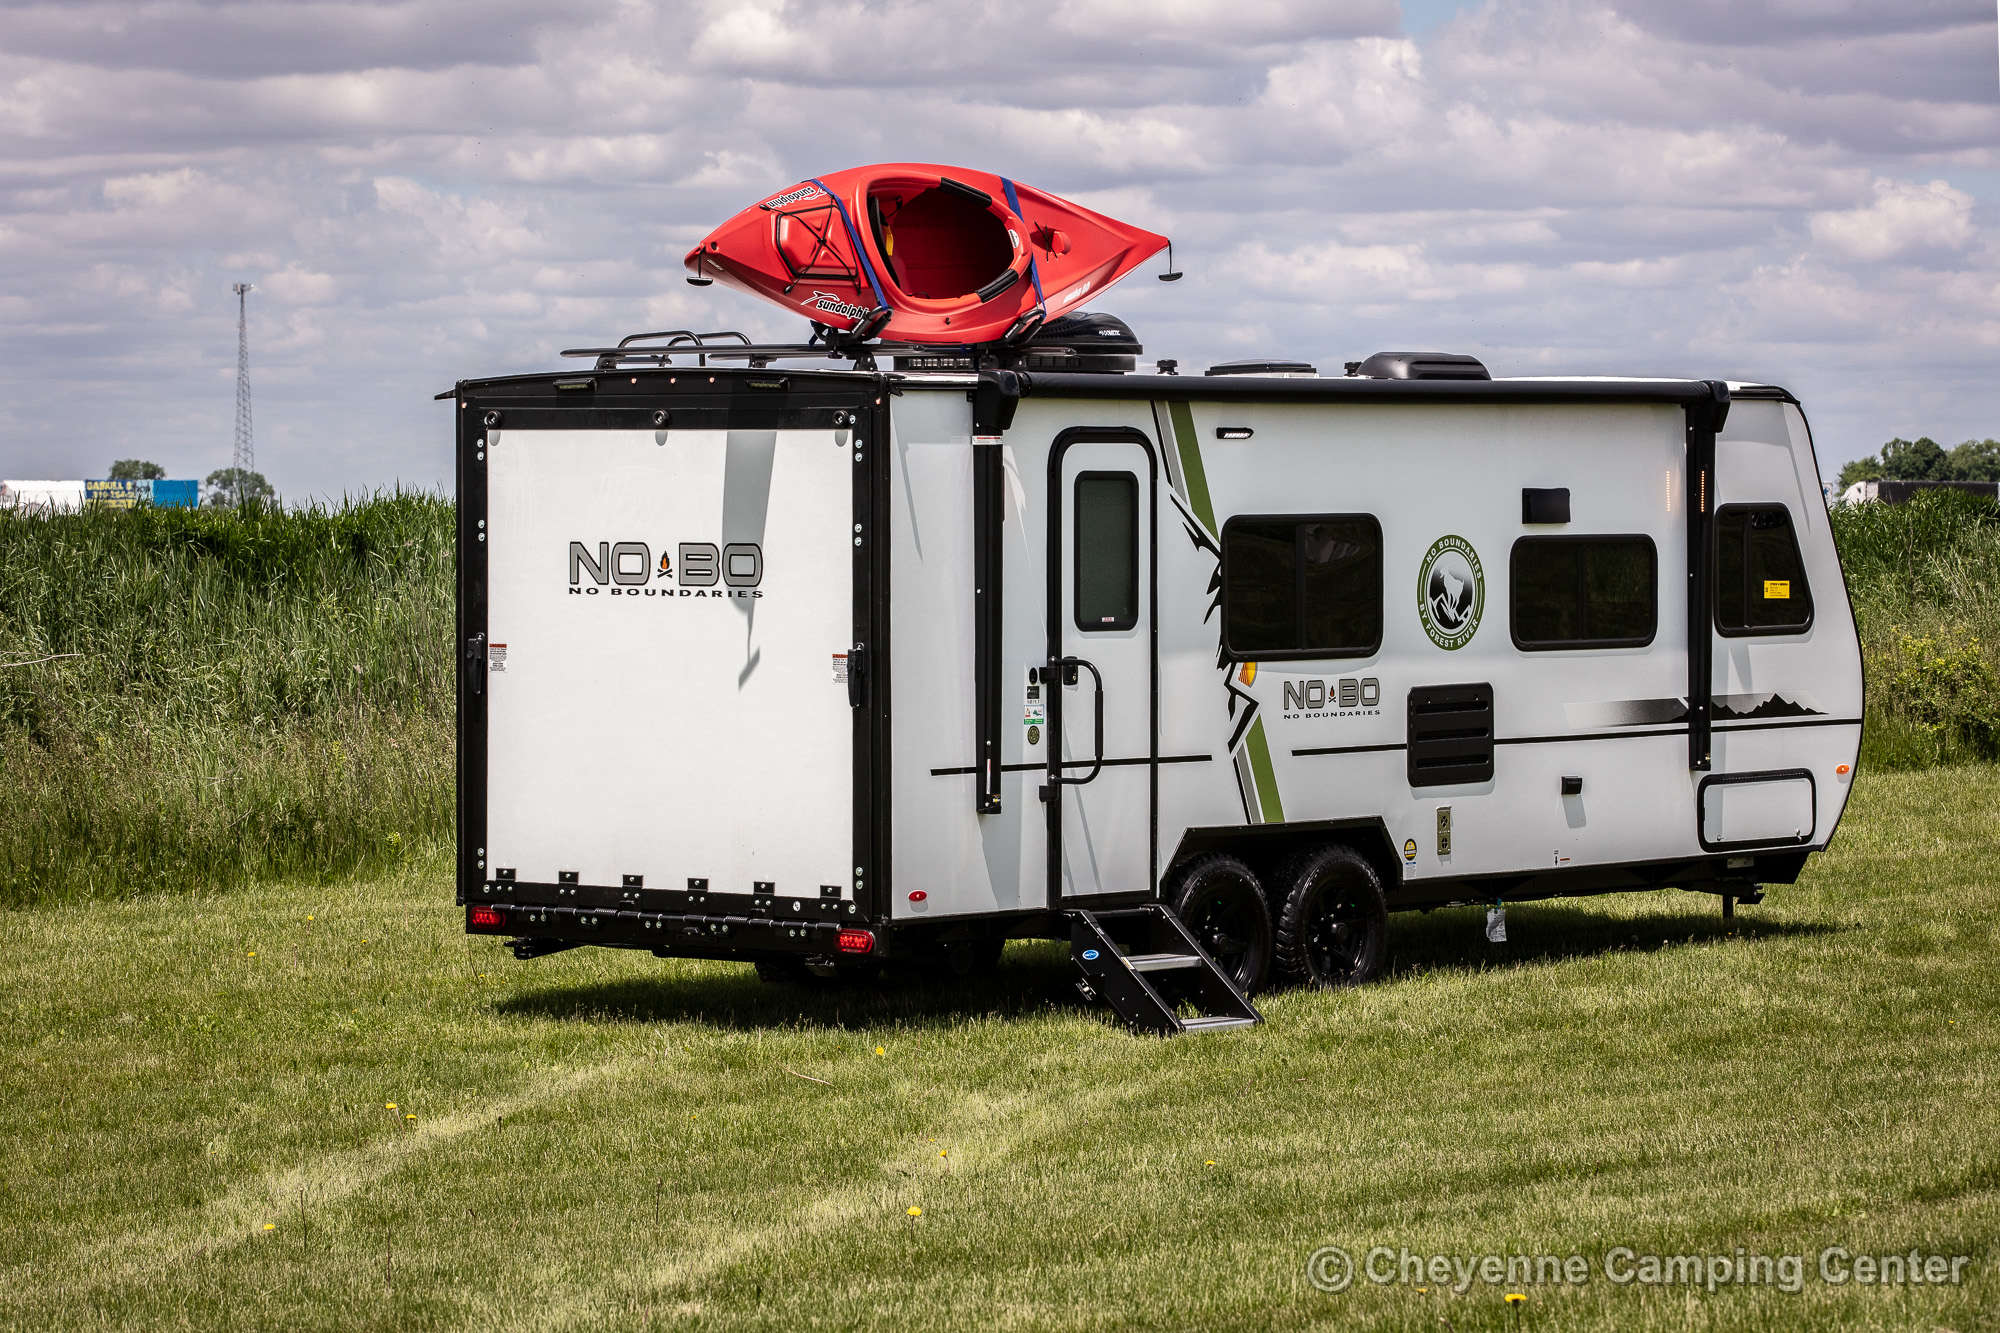 2021 Forest River No Boundaries 19.1 Toy Hauler Travel Trailer Exterior Image